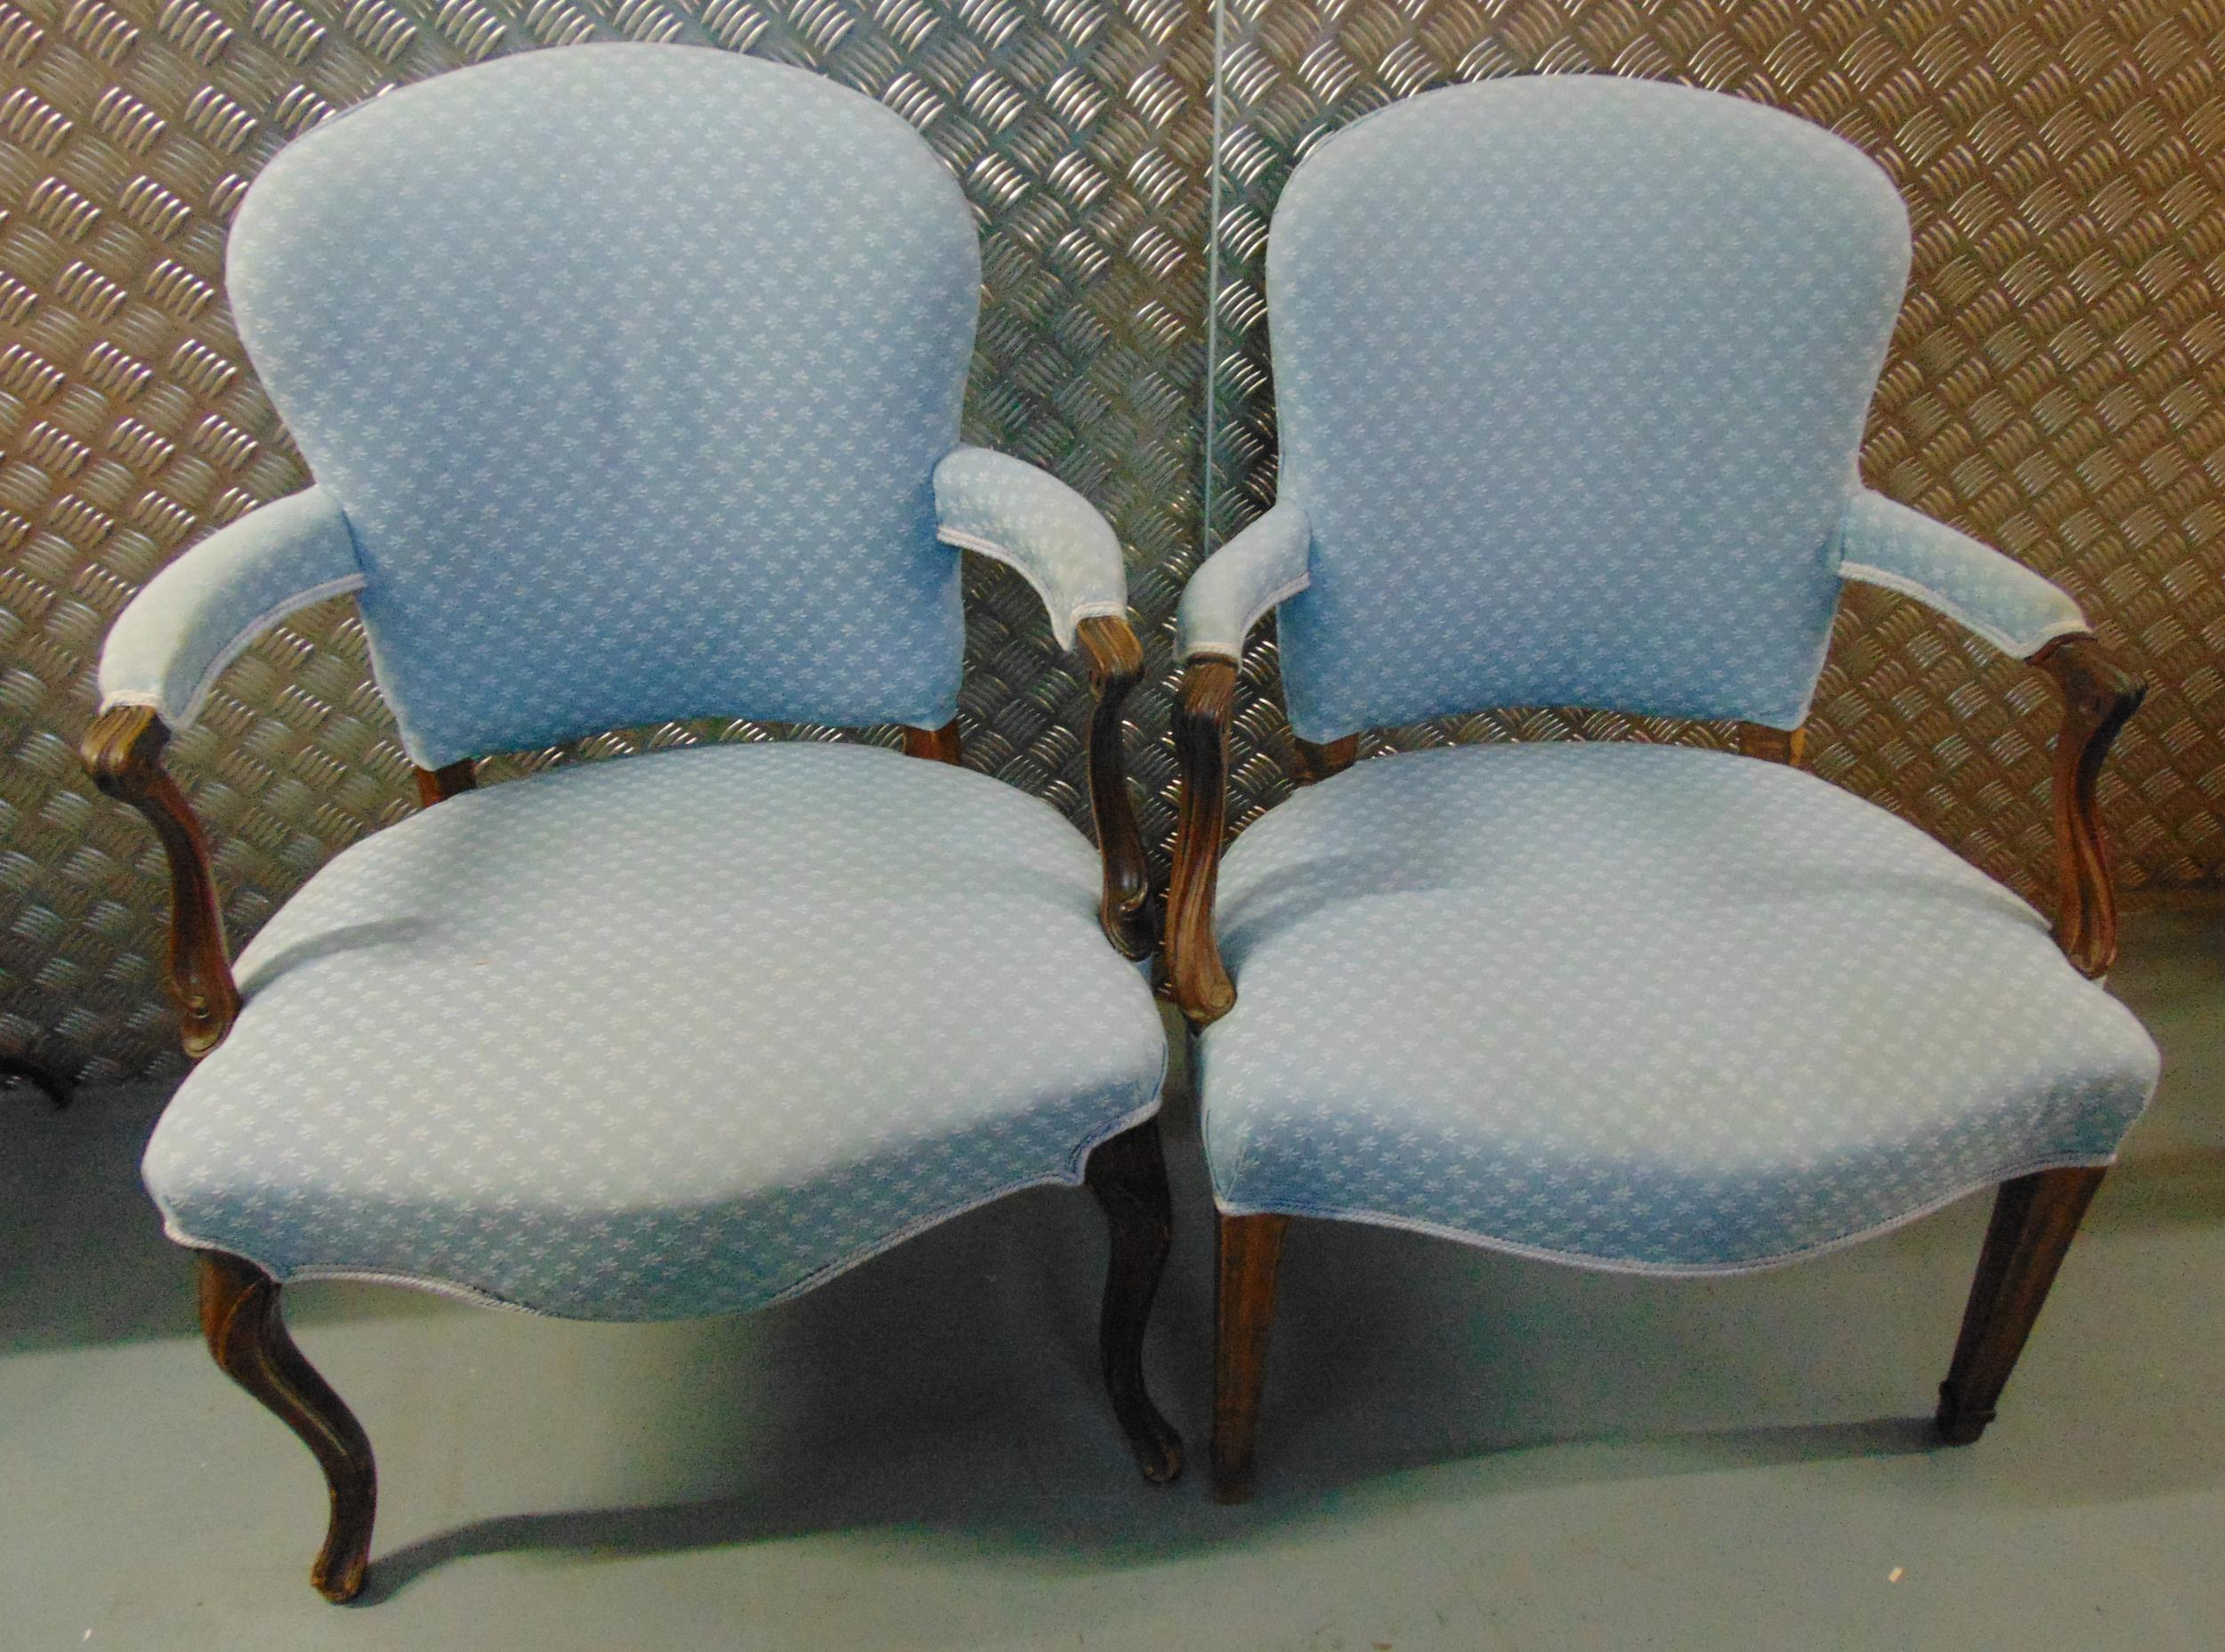 Two upholstered mahogany armchairs